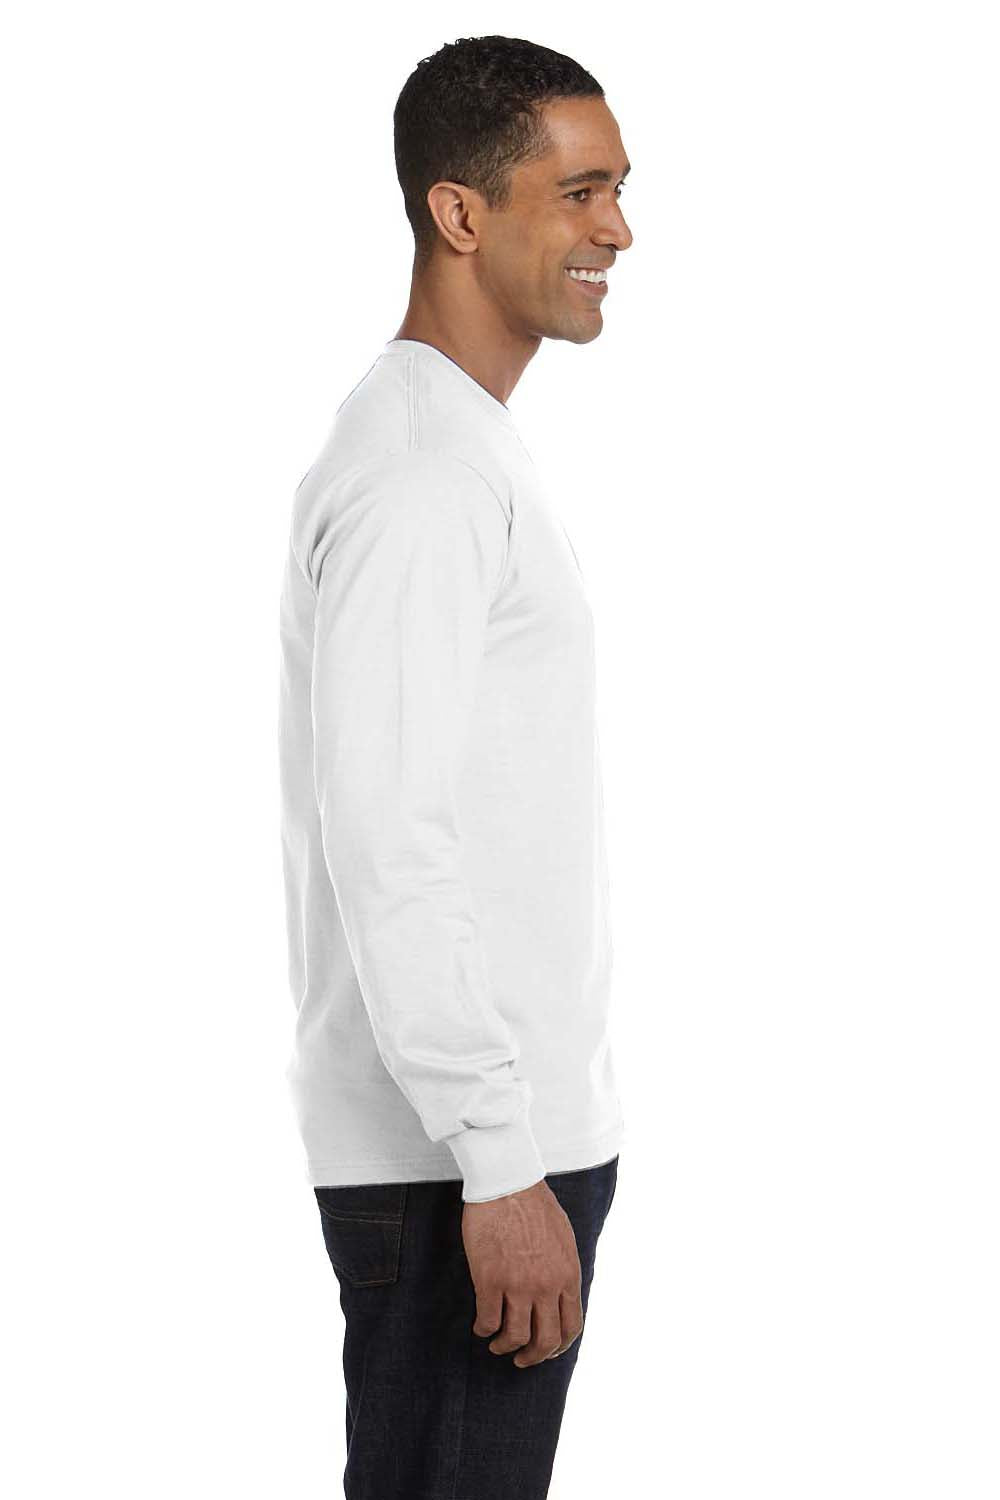 Hanes 5286 Mens ComfortSoft Long Sleeve Crewneck T-Shirt White Side